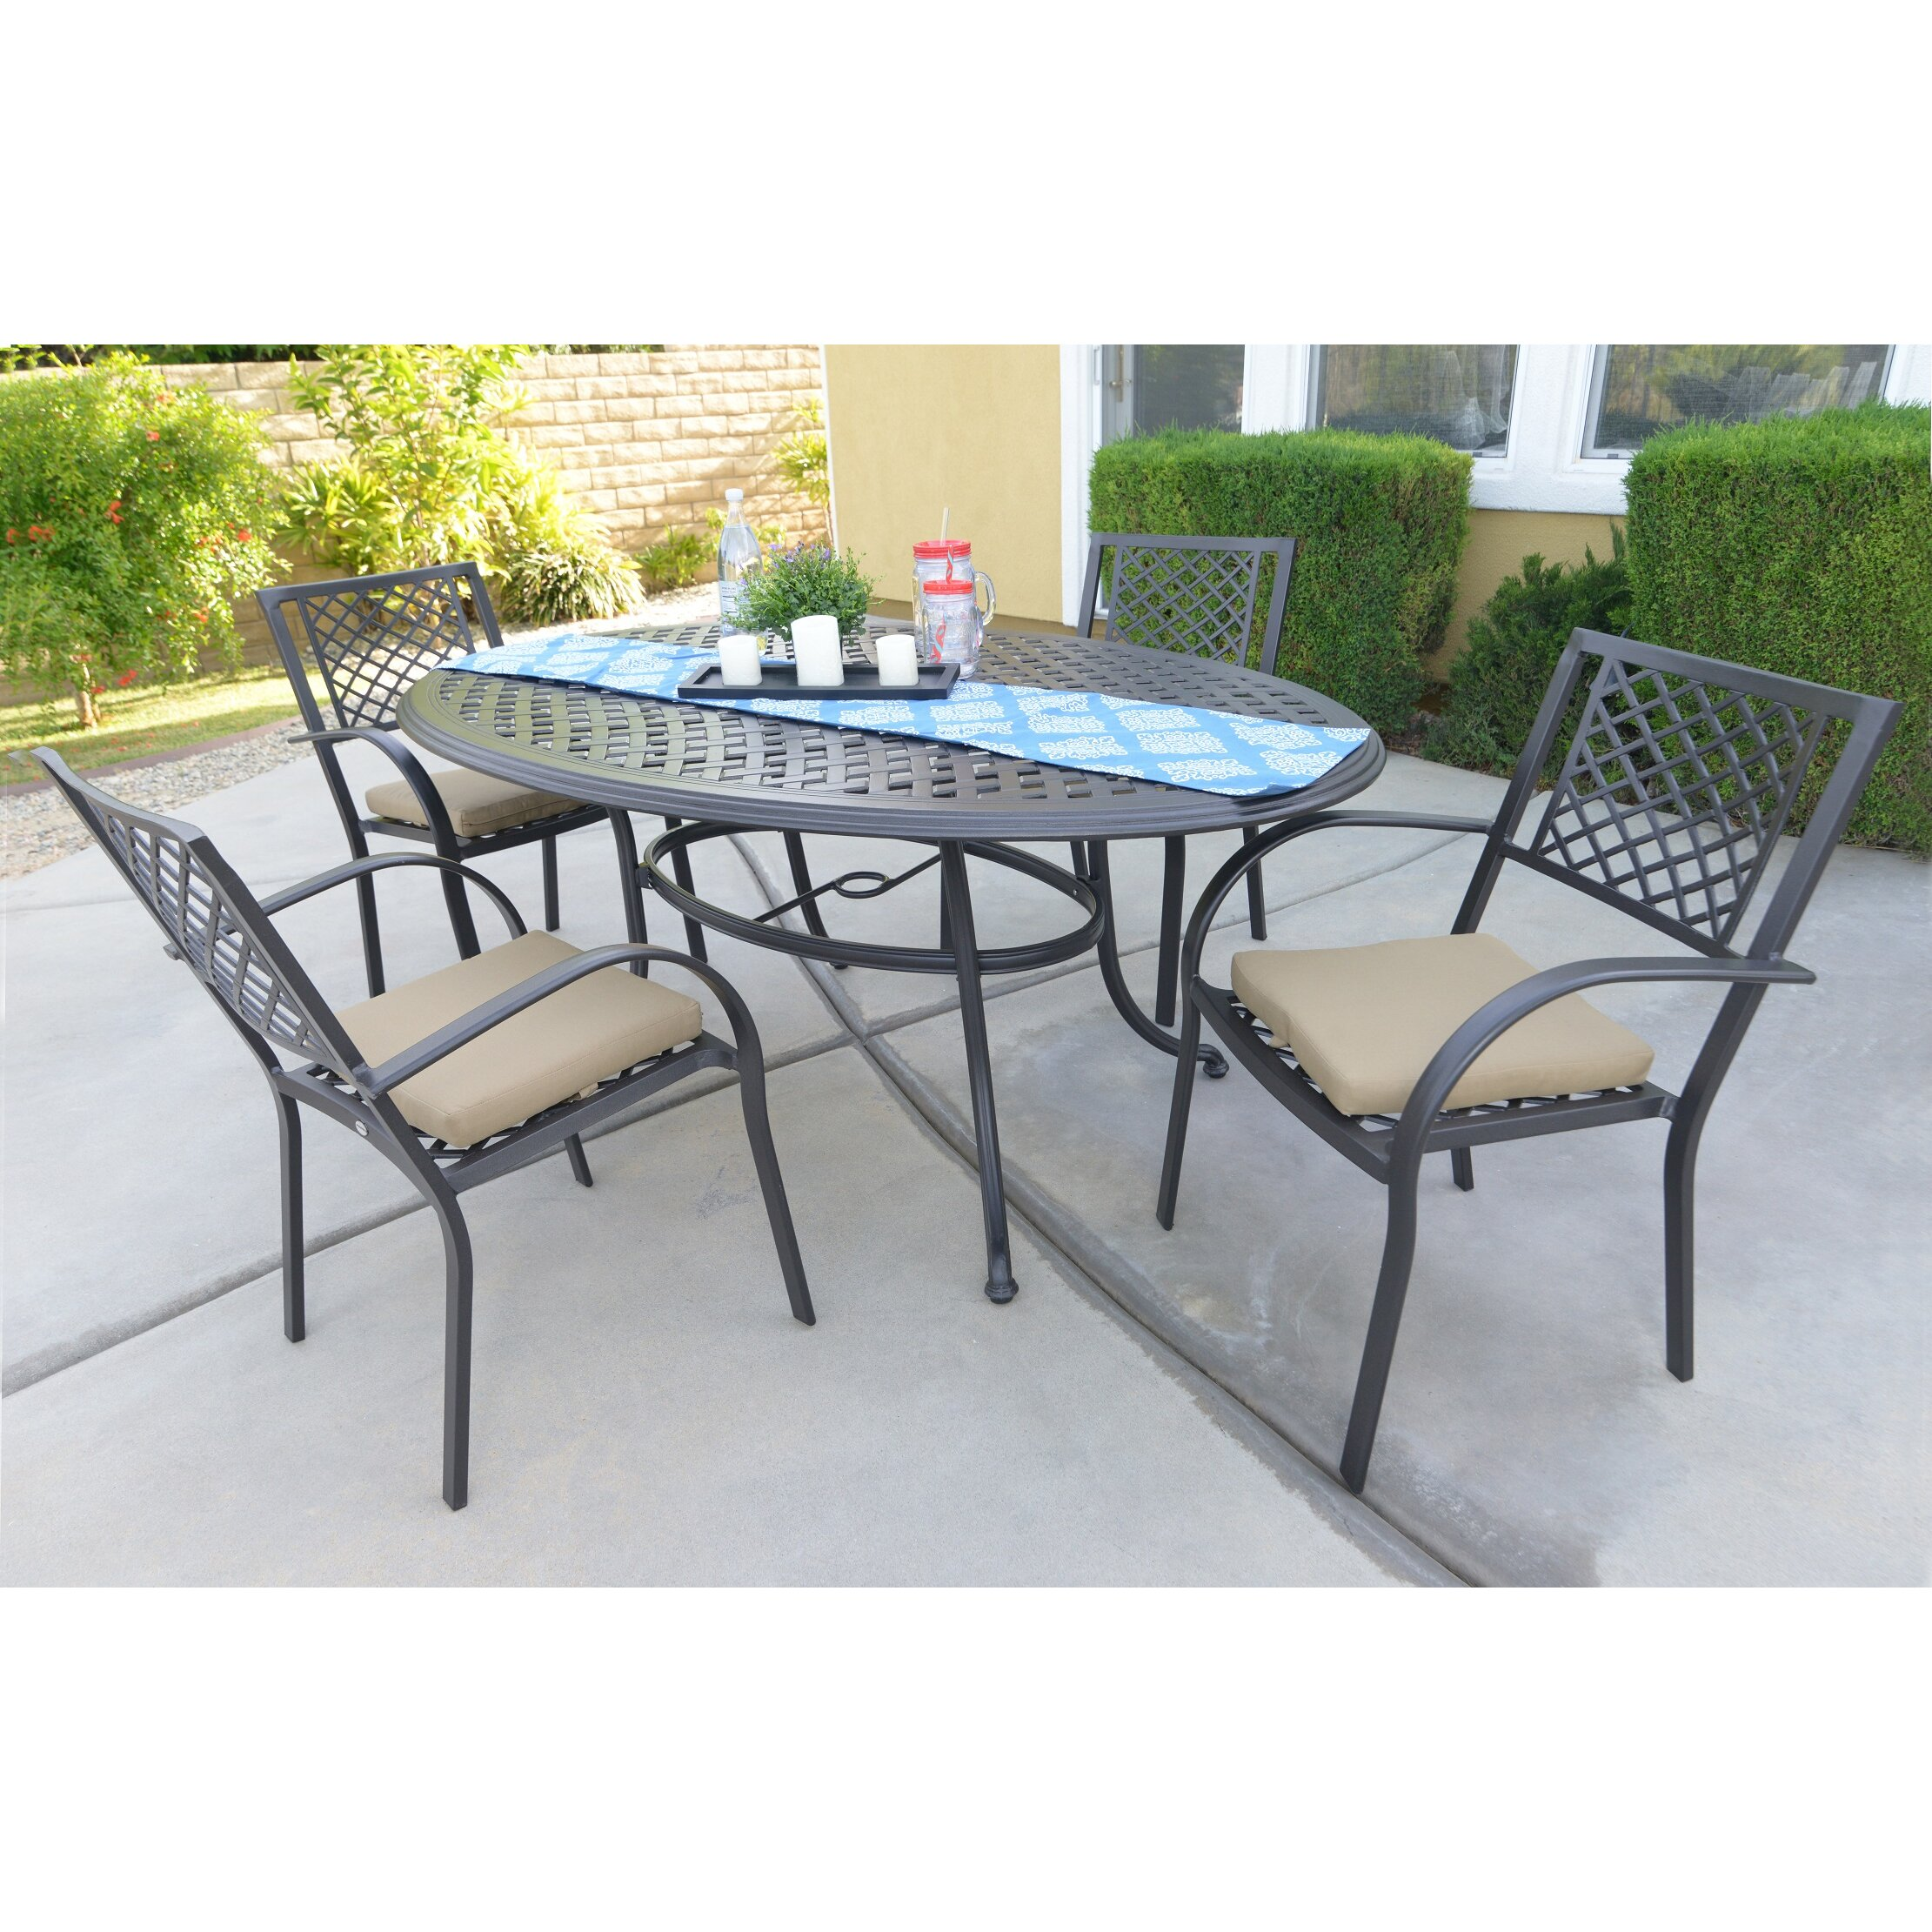 Patio Furniture Miami Outlet Patio Furniture Naples Fl Chicpeastudio 28 Home Design Outlet